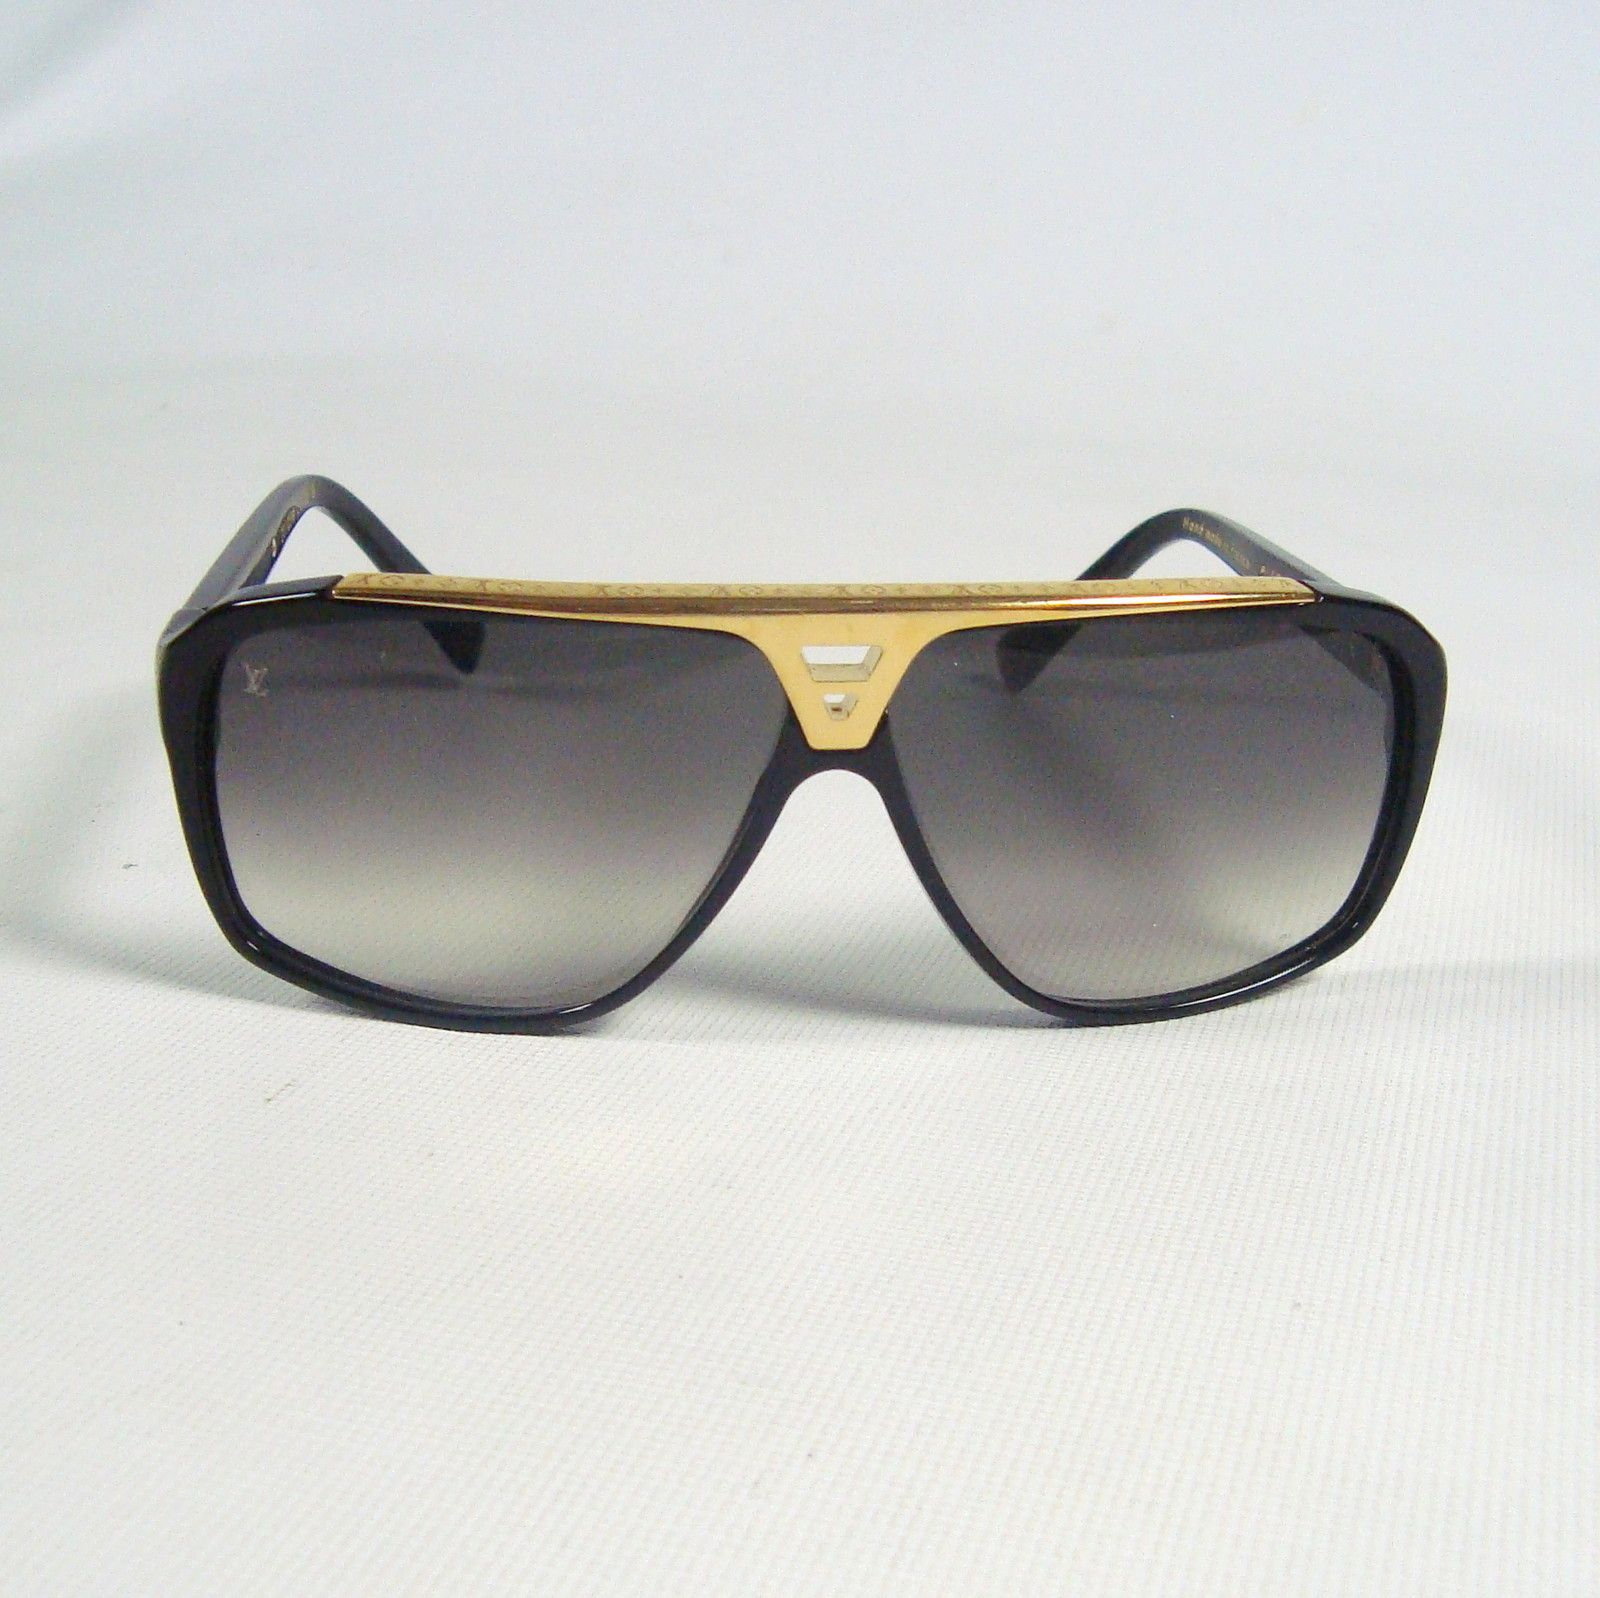 8160632a6f36 Gold Sunglasses Frames